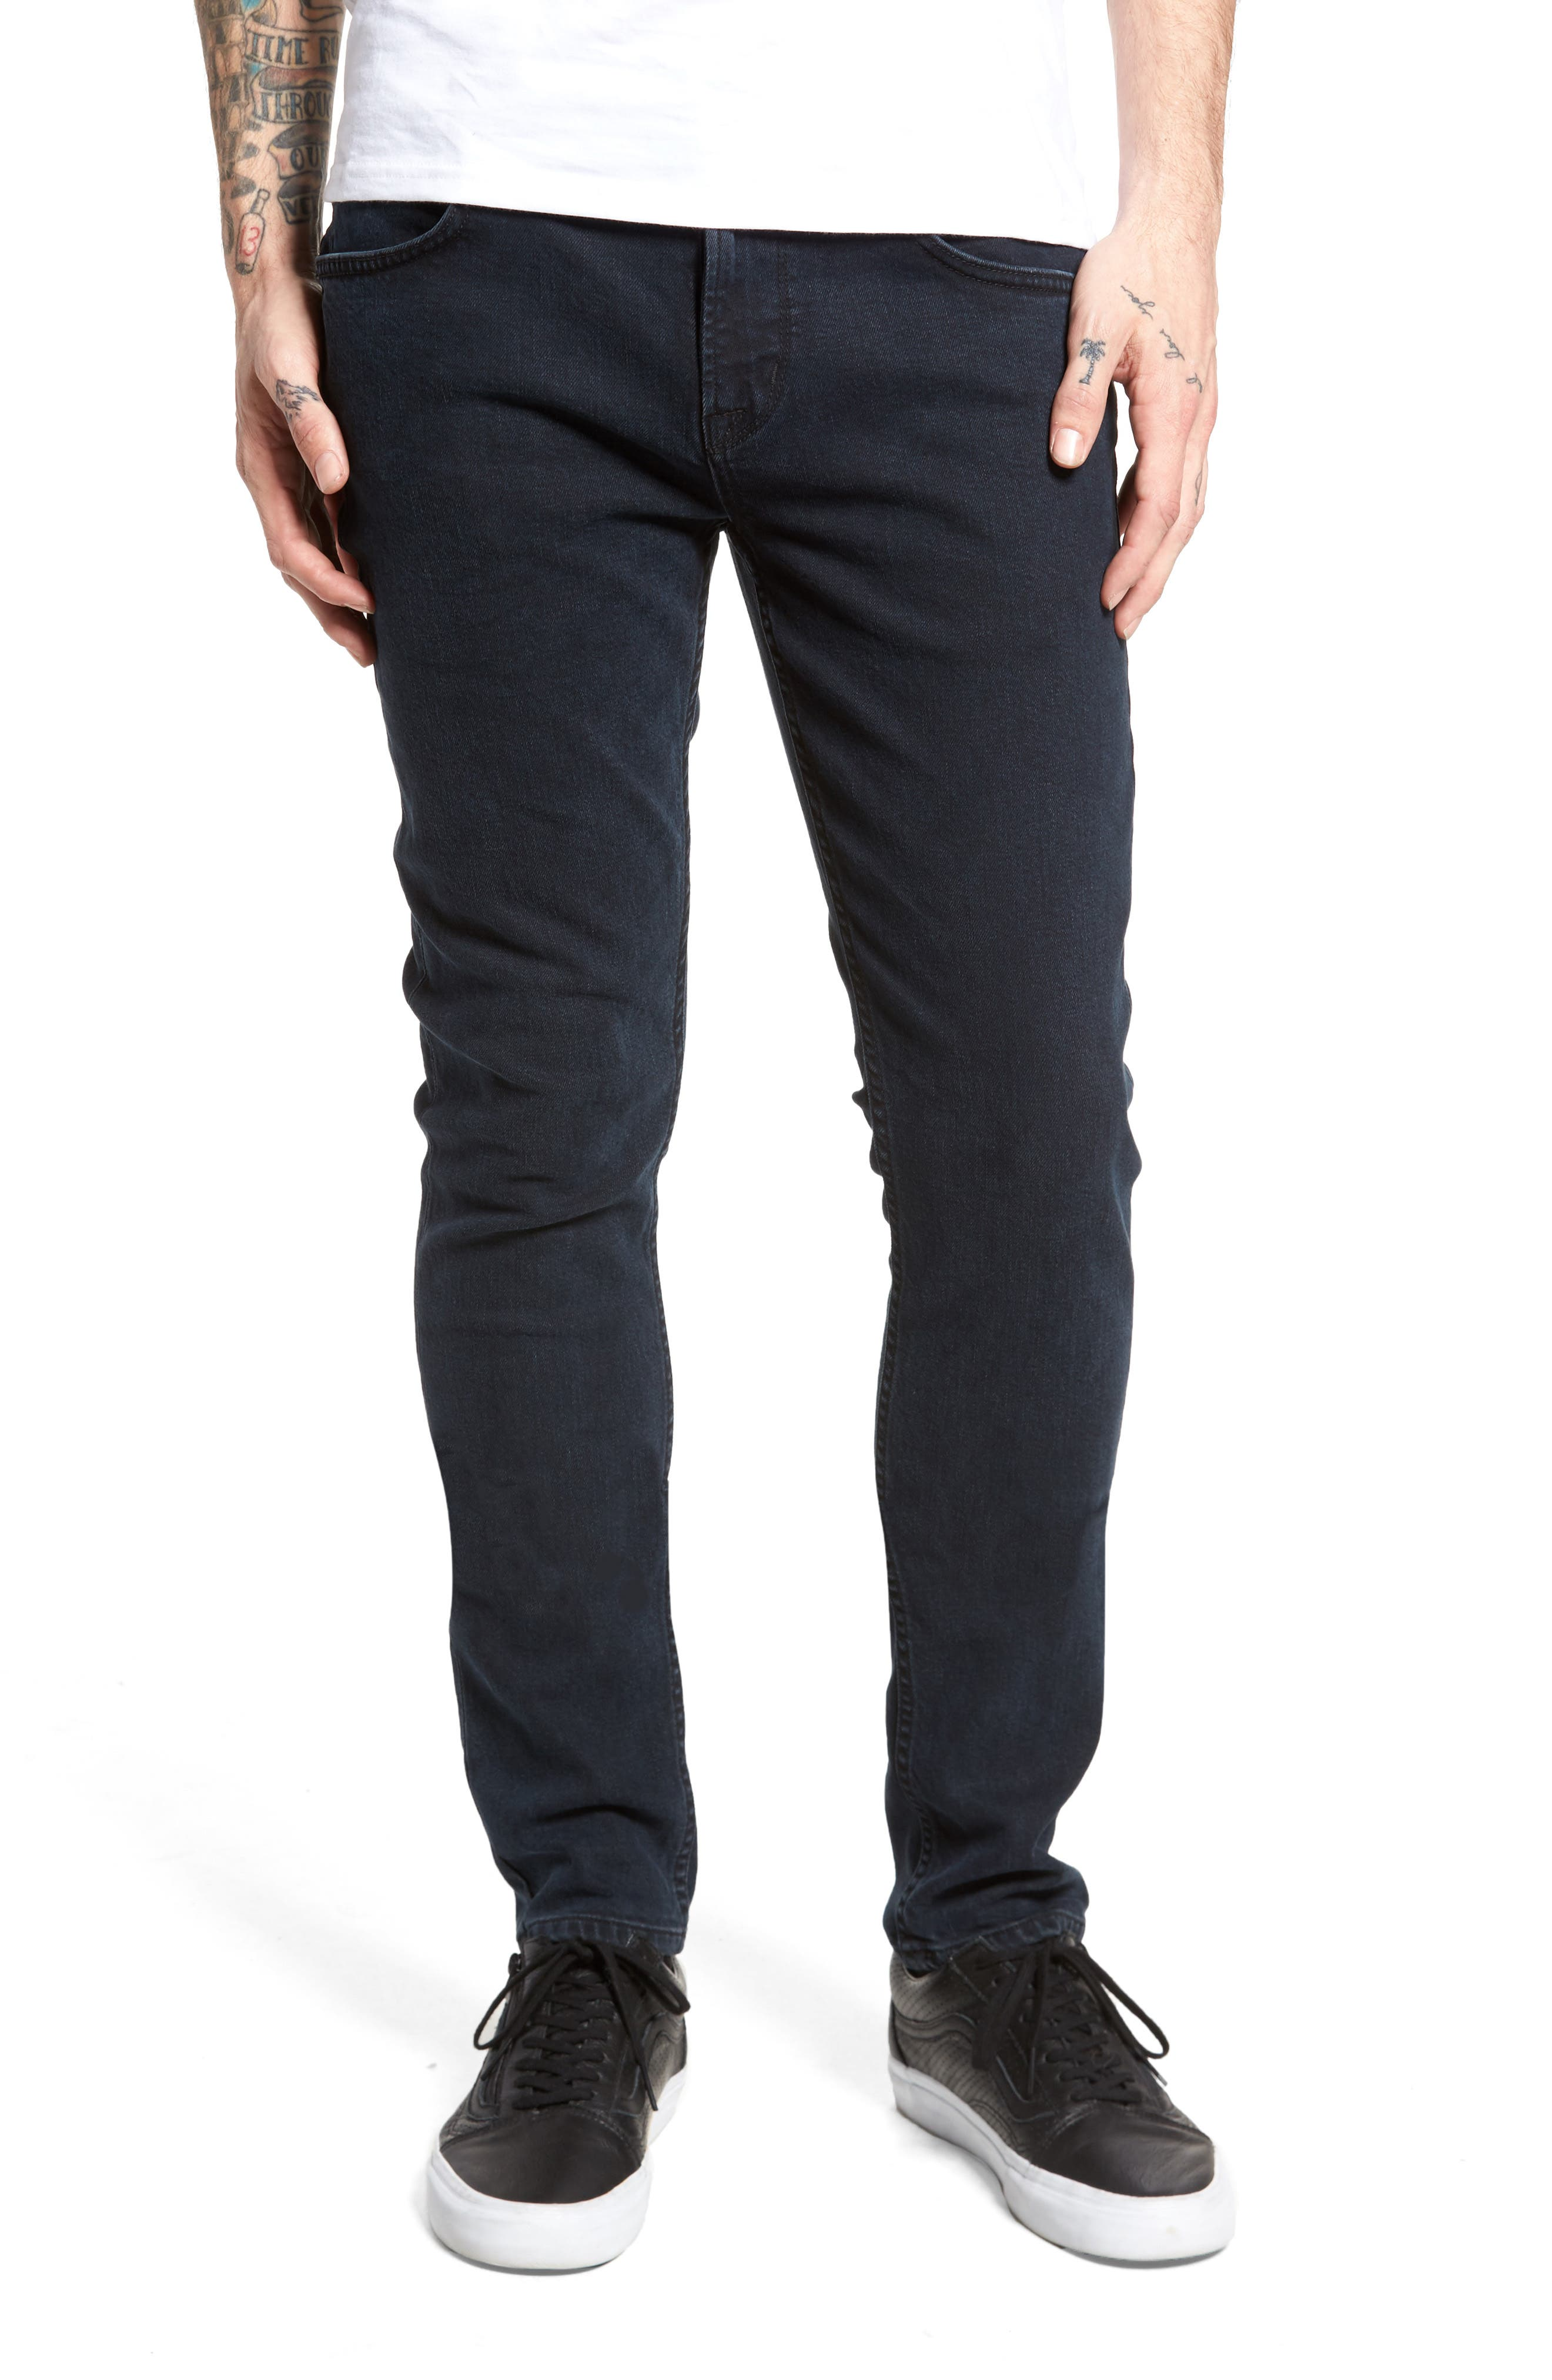 Axl Skinny Fit Jeans,                         Main,                         color, Sight Unseen